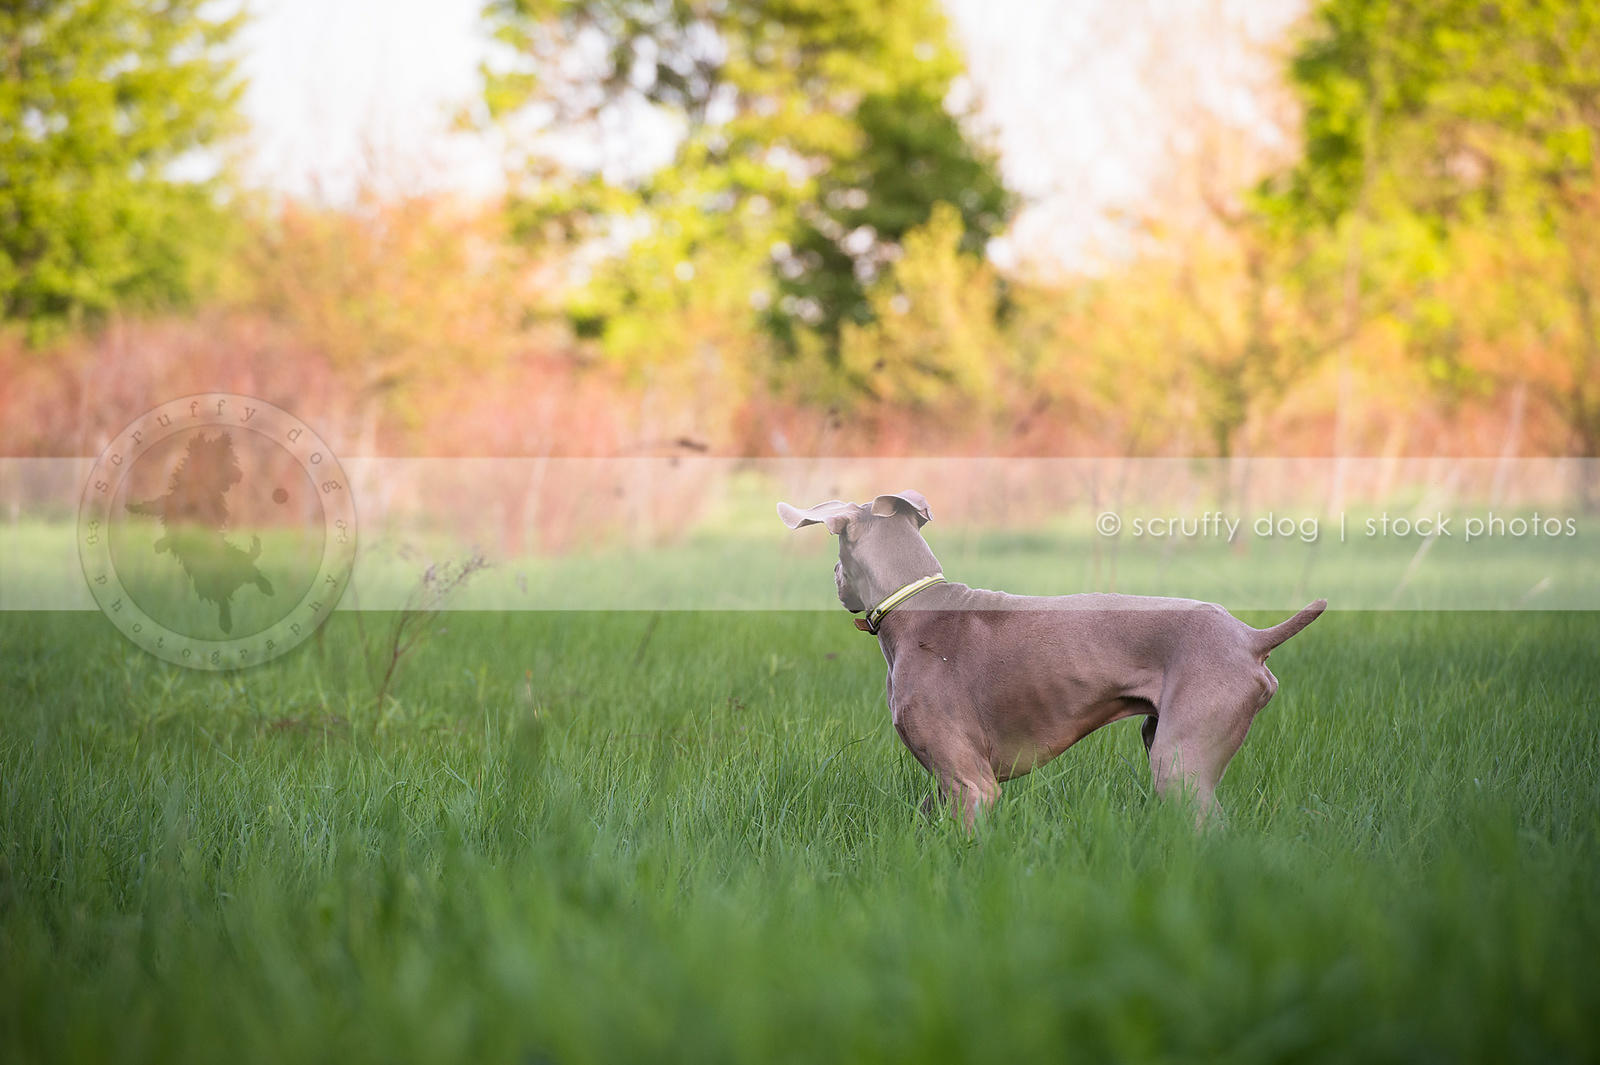 grey dog with ears turning looking away in meadow